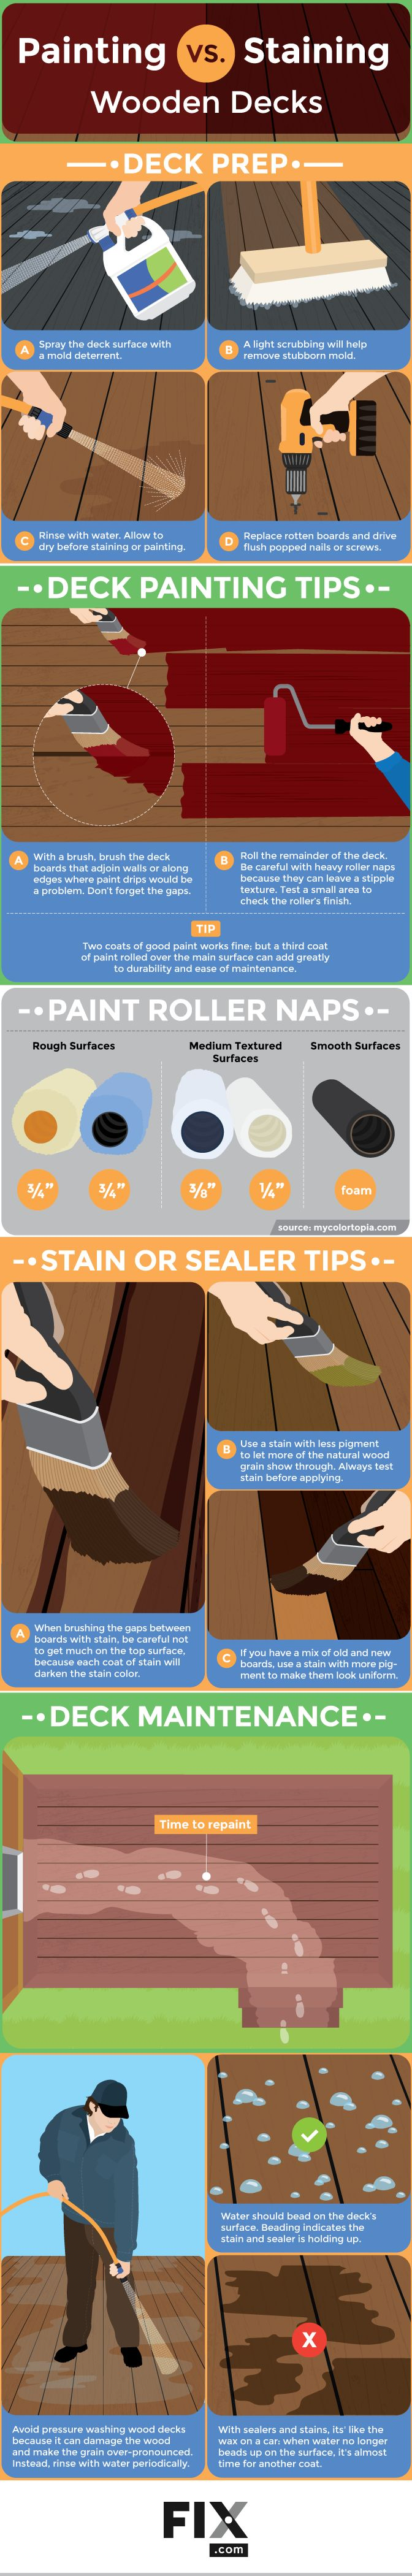 Find out the pros and cons of staining vs. painting your wooden deck! #DIY